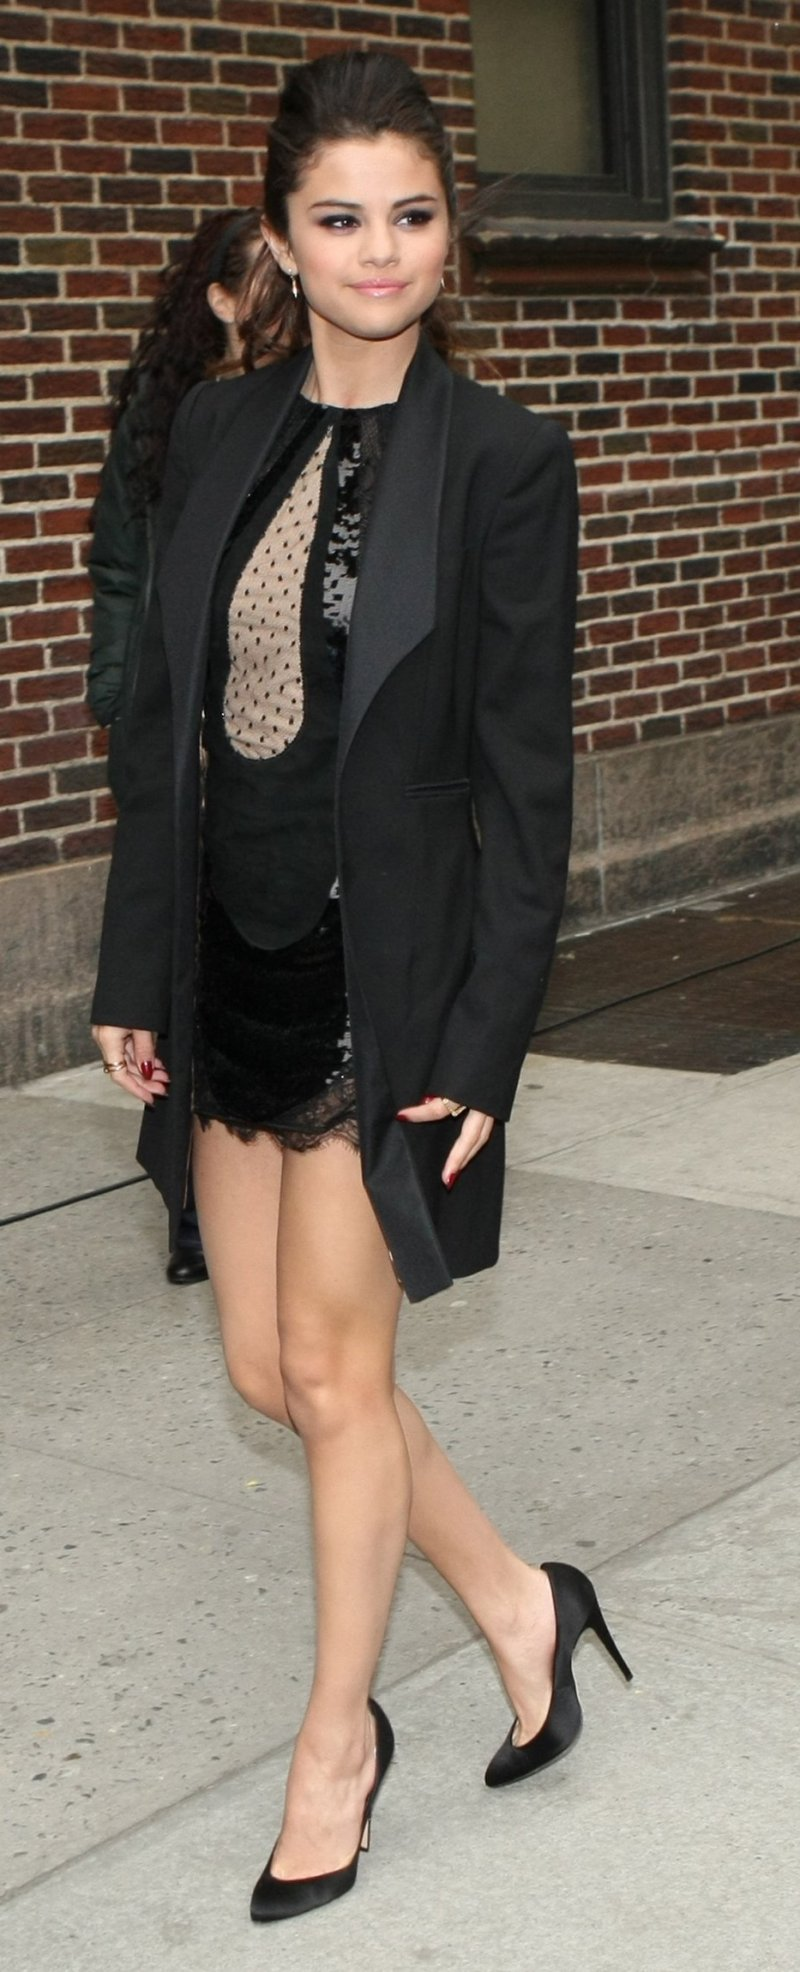 Selena Gomez S Legs And Feet 23 Sexiest Celebrity Legs And